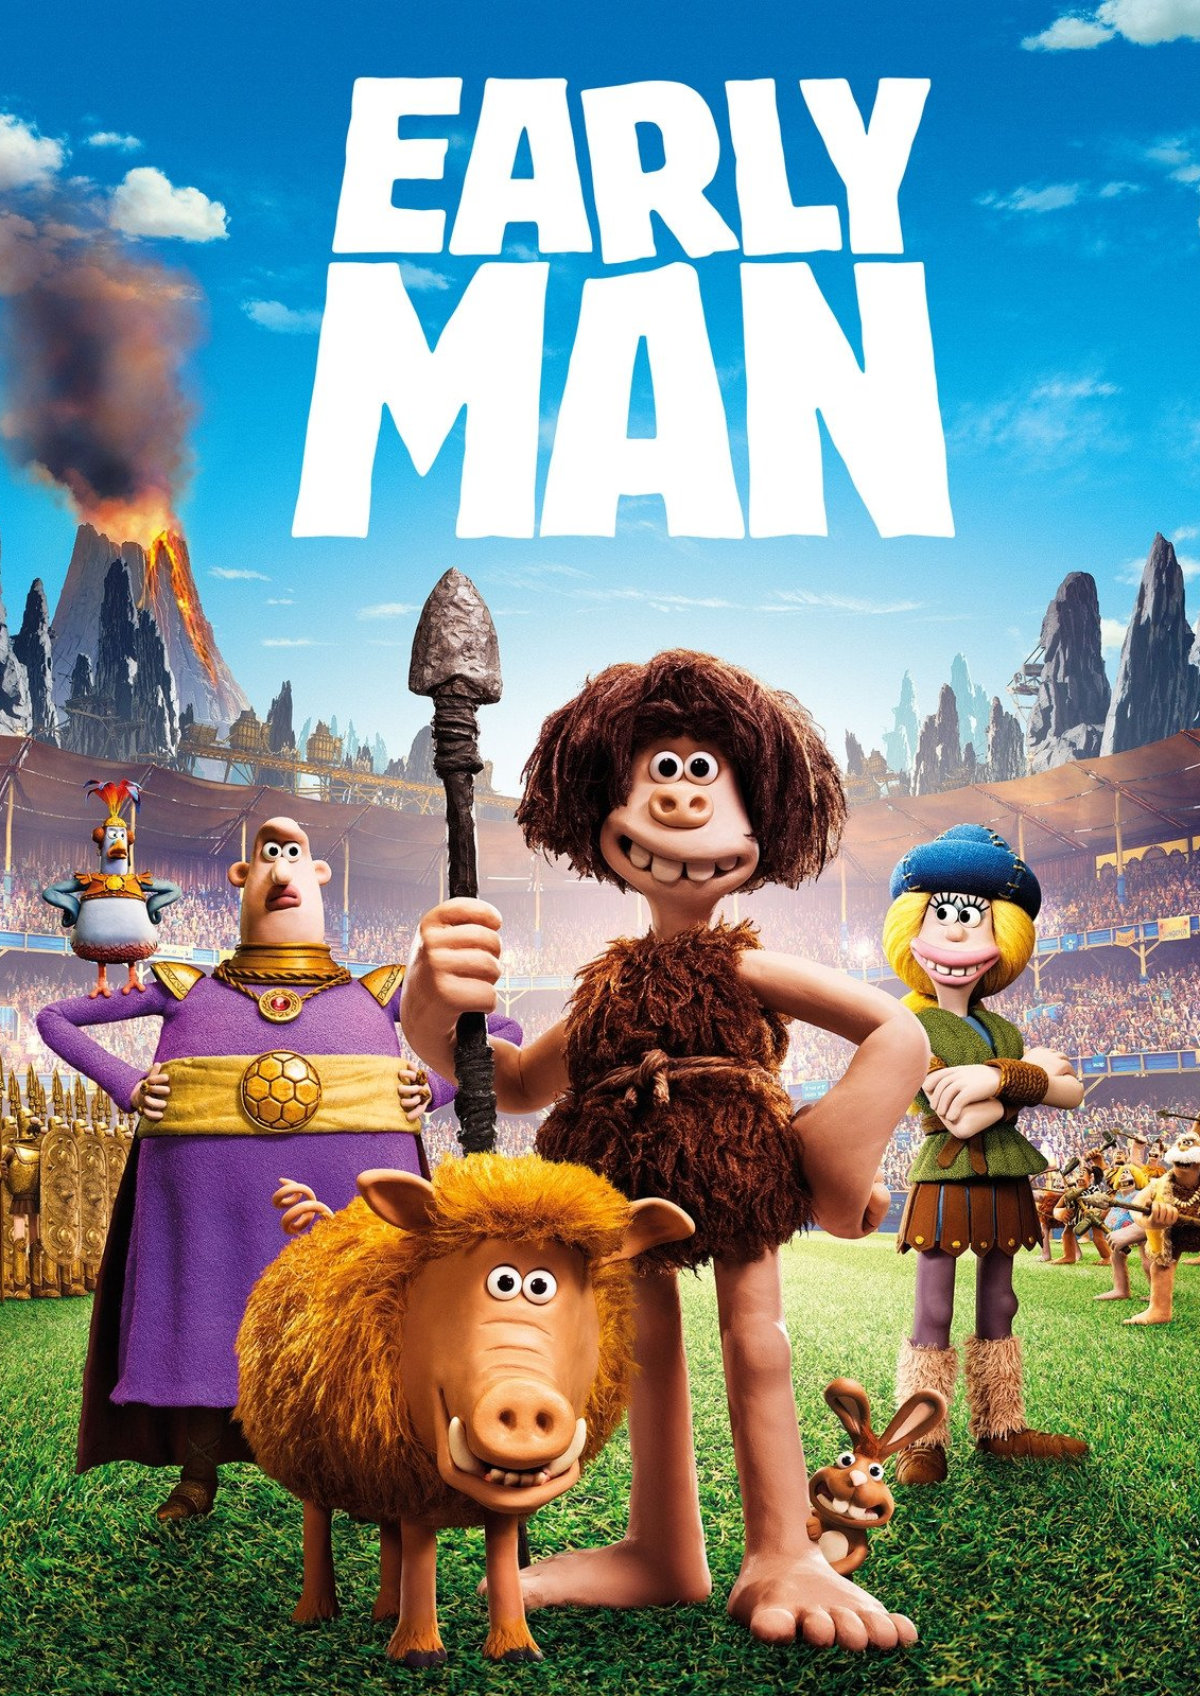 'Early Man' movie poster